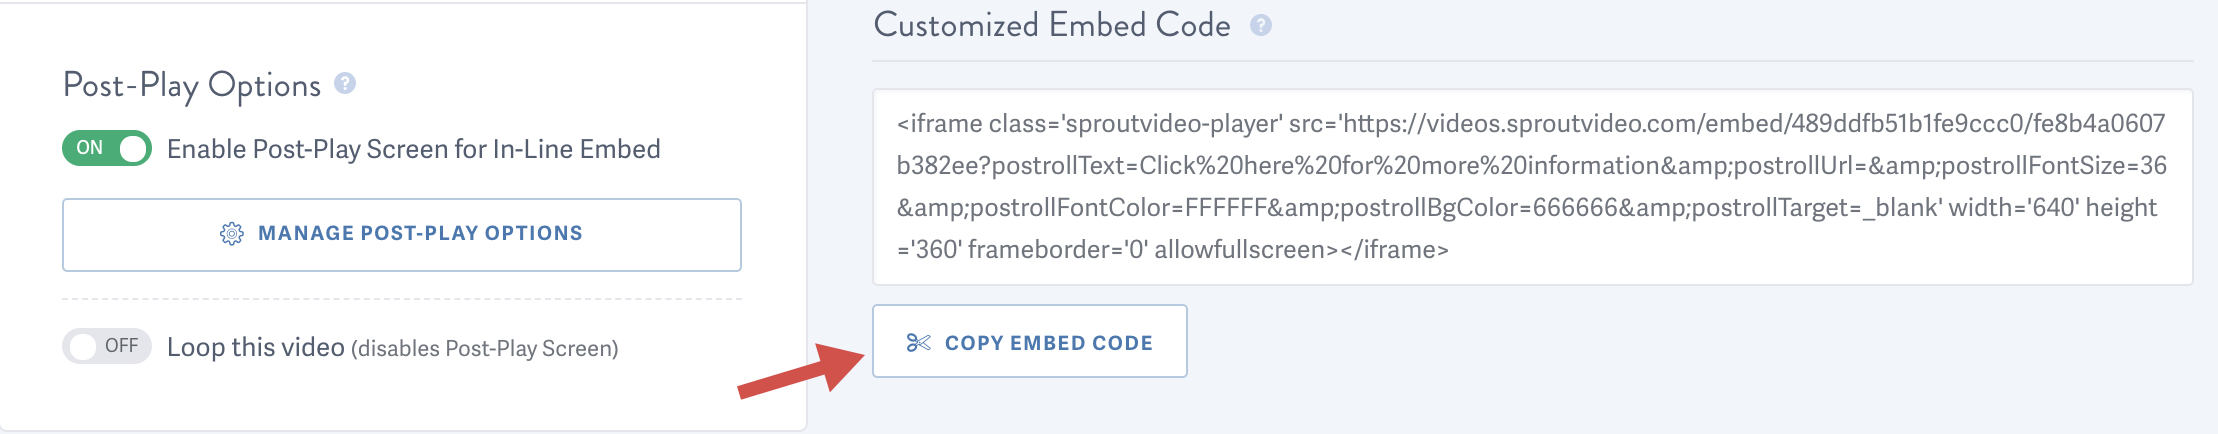 Copy the customized embed code